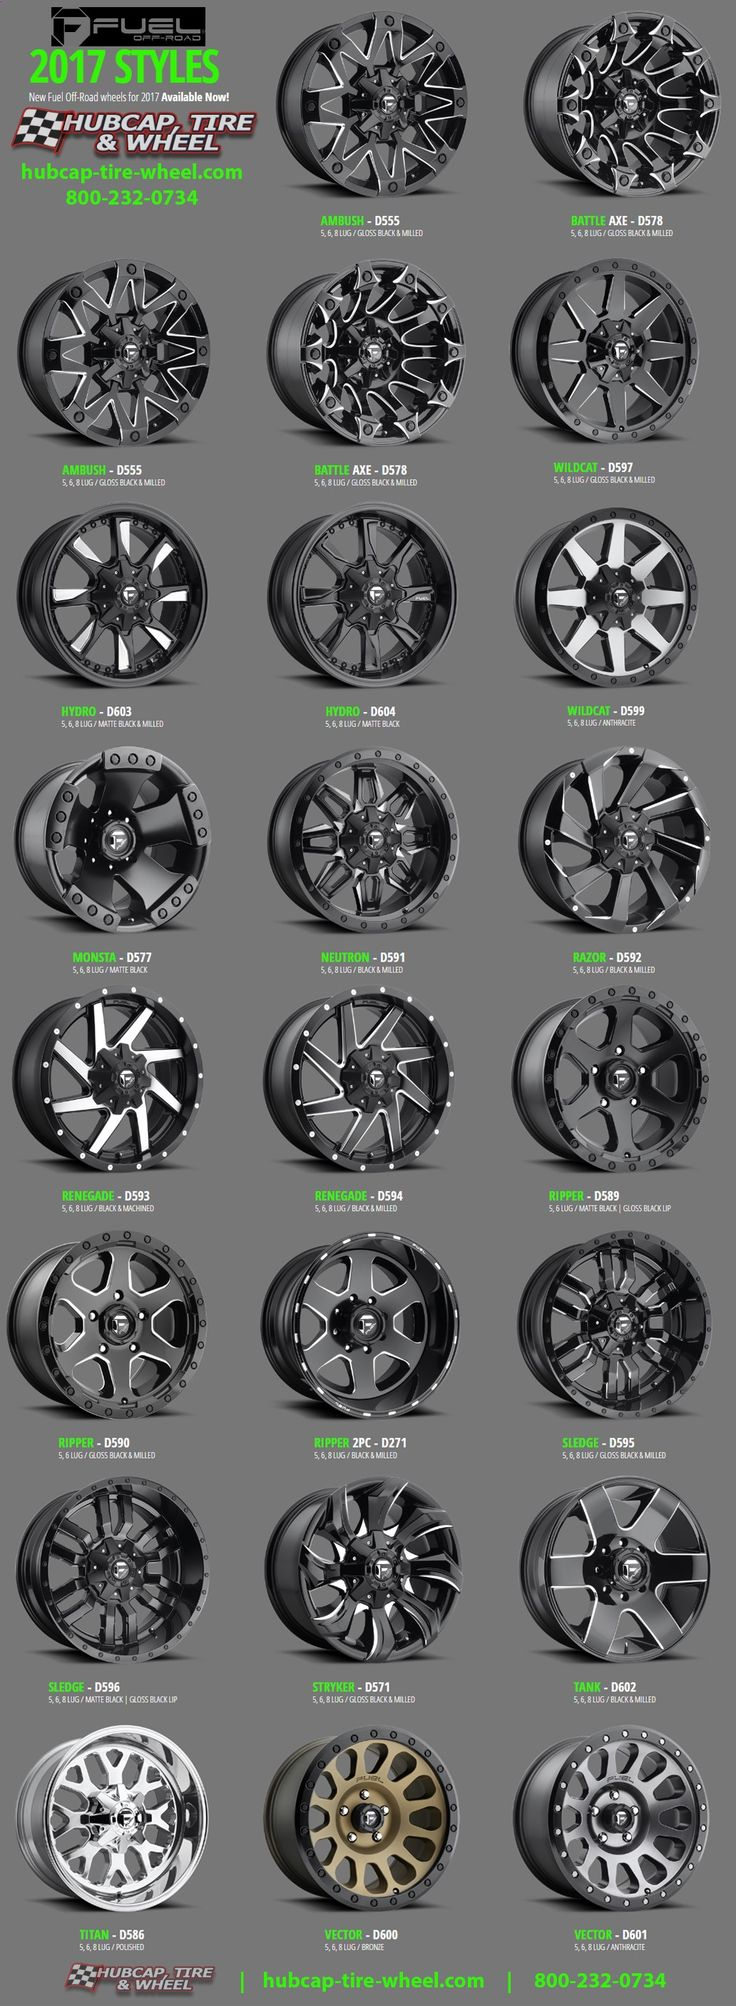 2017 Fuel Off-Road Wheels  Rims - For Jeeps, Trucks, SUVs